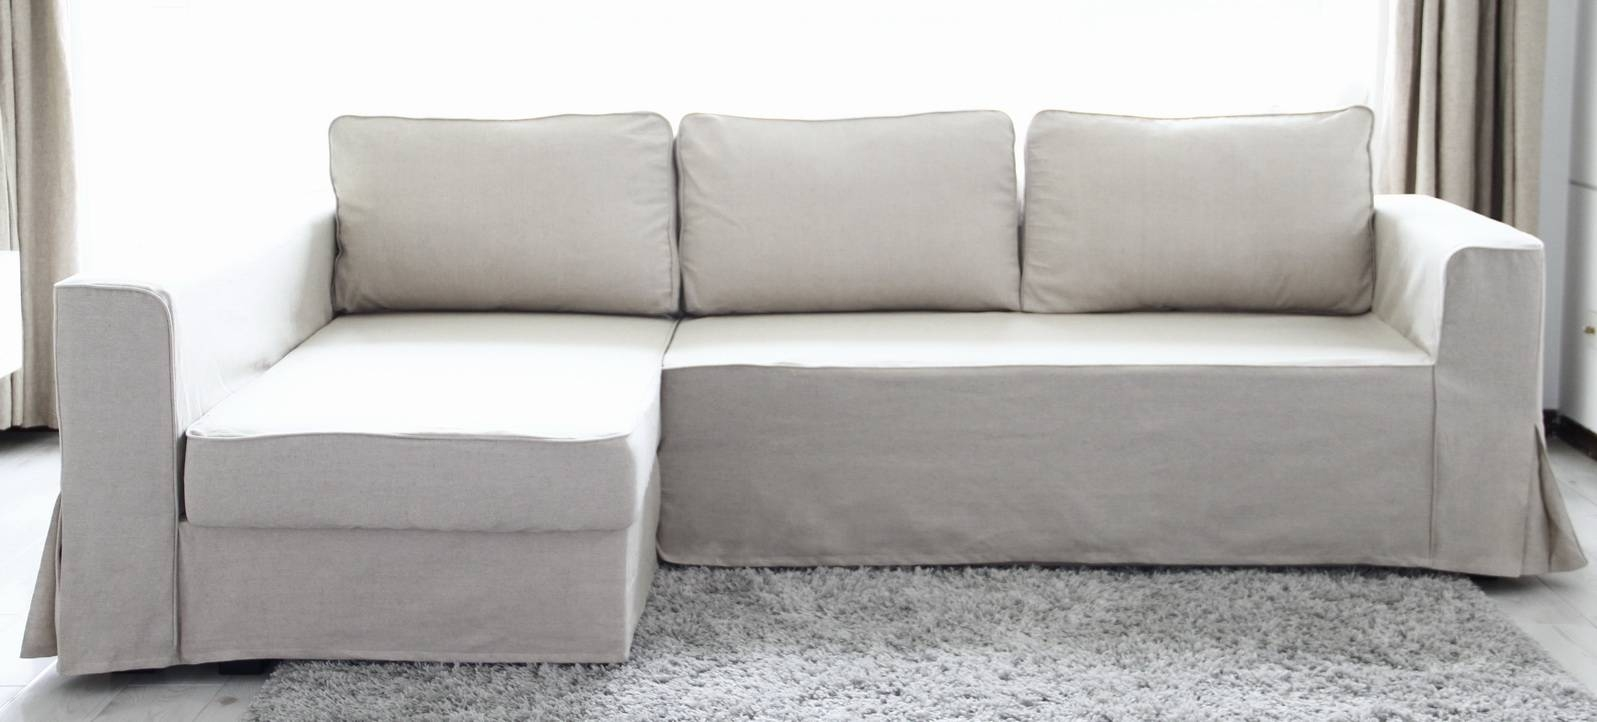 Loose Fit Linen Manstad Sofa Slipcovers Now Available intended for Chaise Sofa Covers (Image 17 of 30)